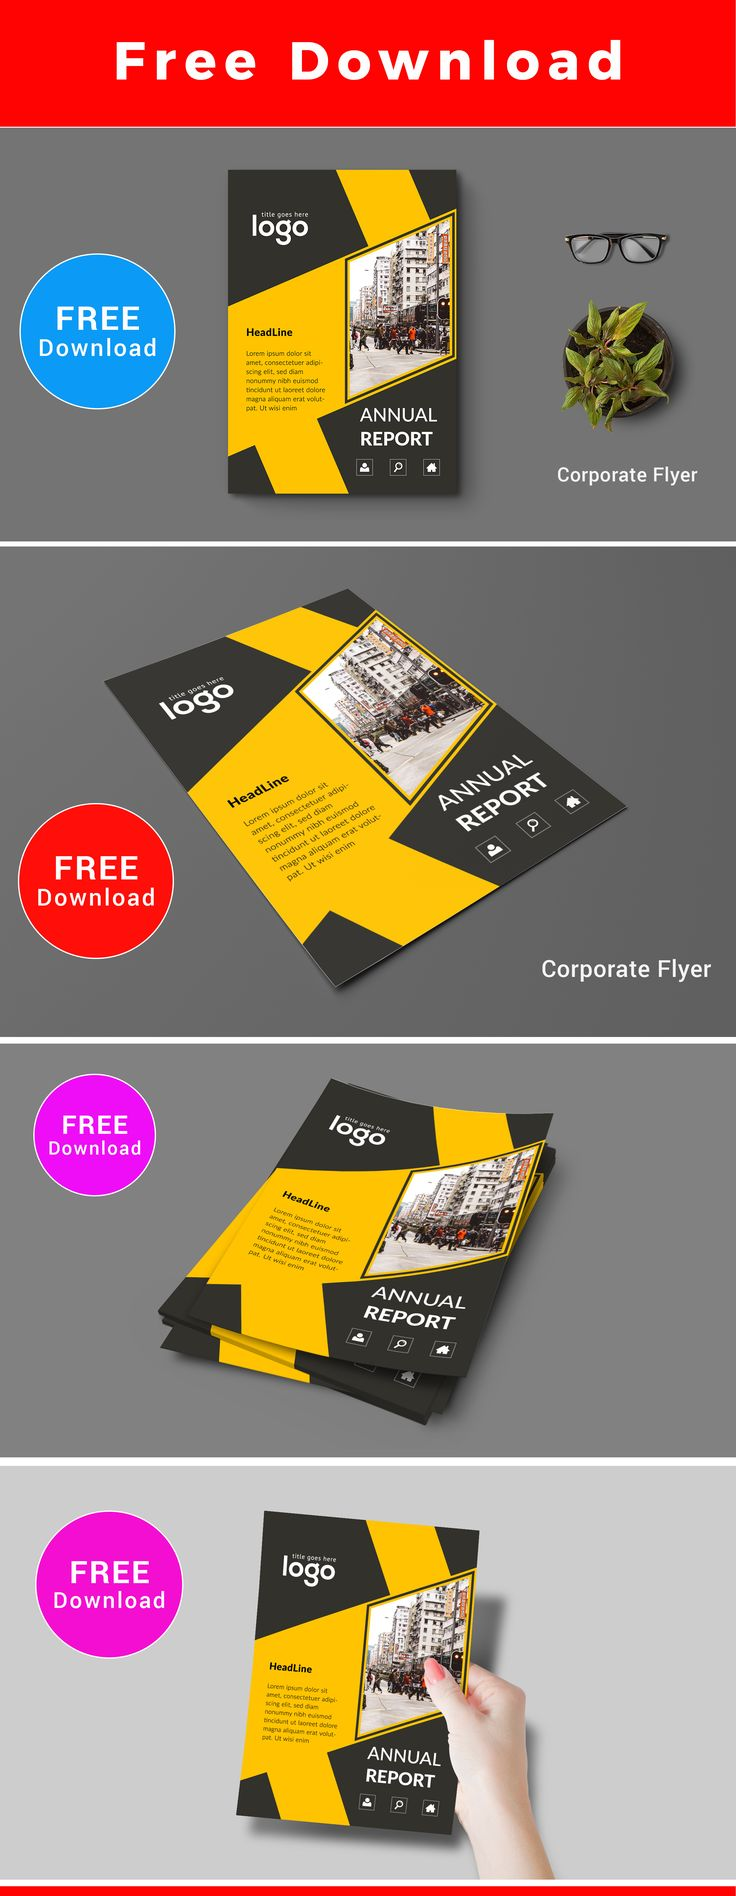 #free Download Flyer Template #template #download #free #stationary  #business #